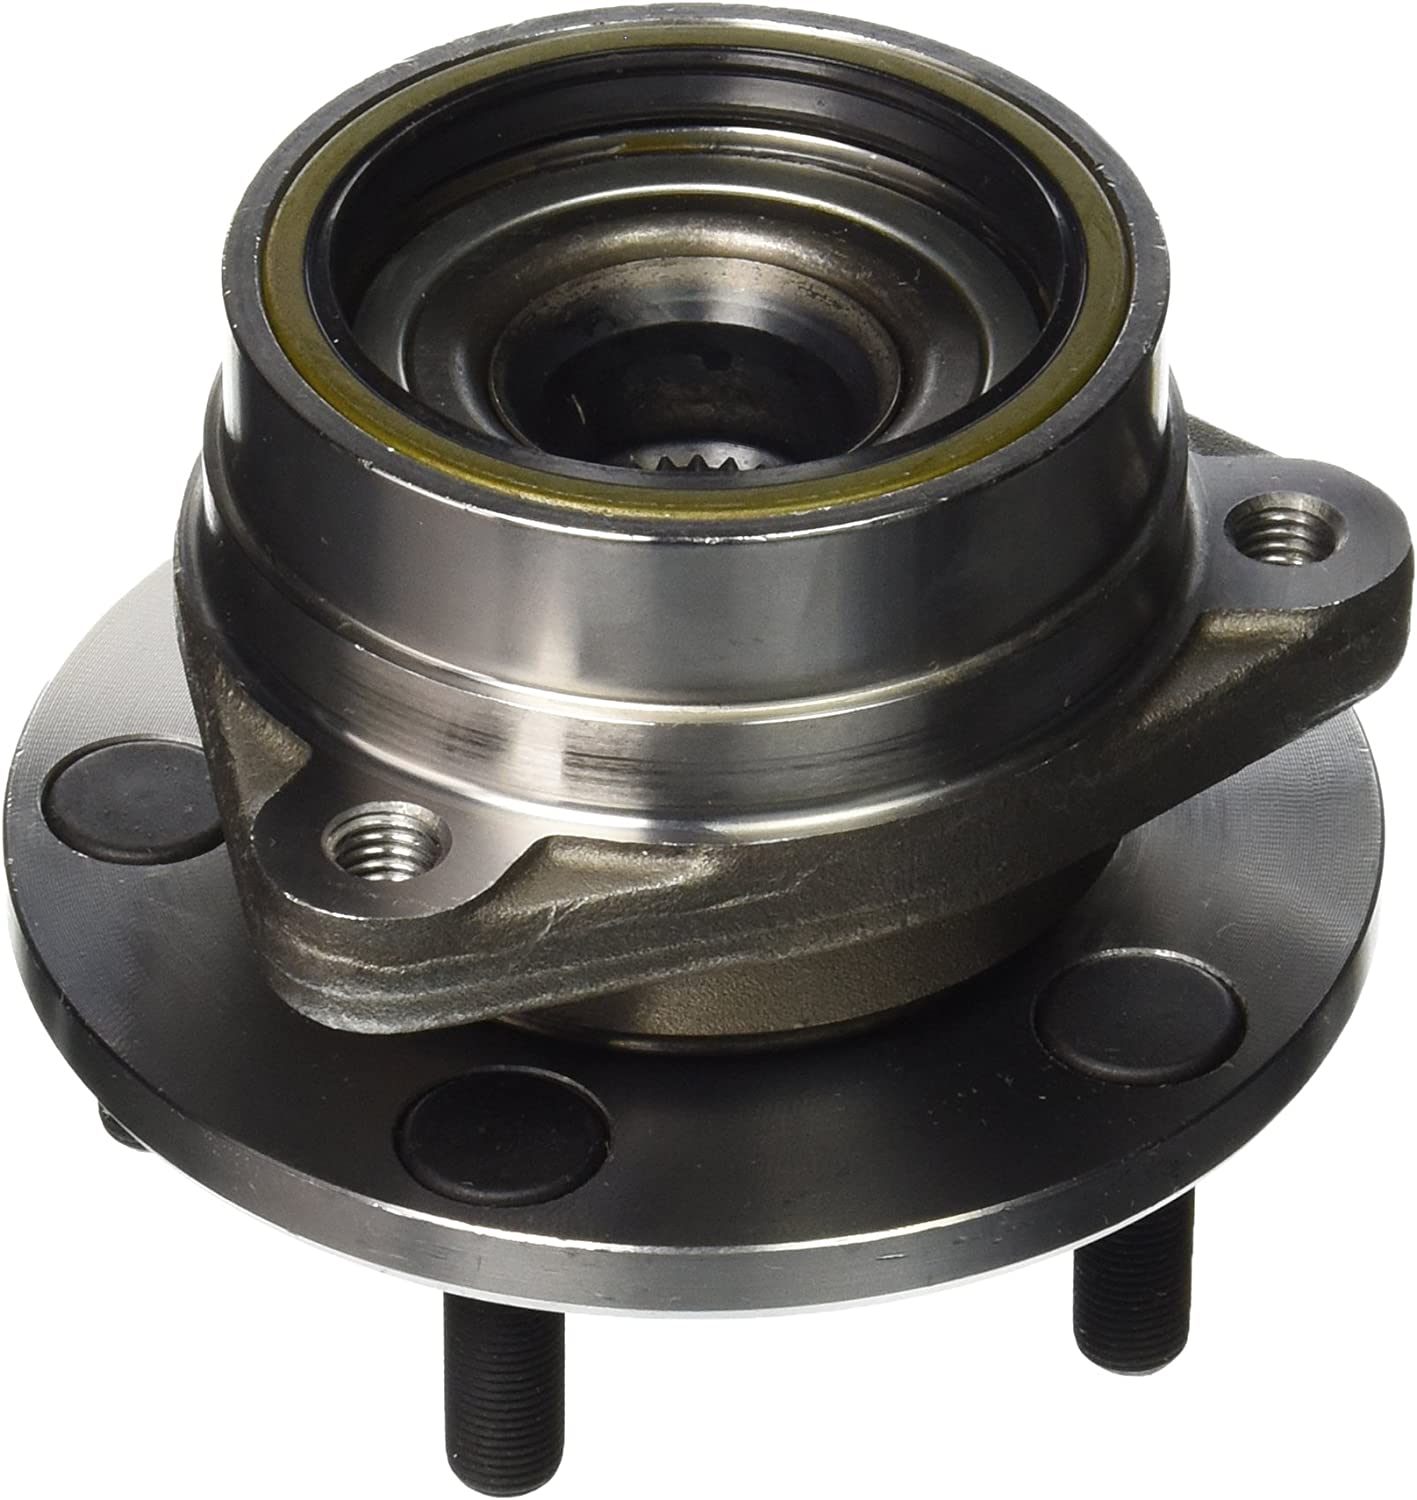 Virginia Beach Mall Mevotech Special Campaign H513107 Wheel Bearing and Hub Assembly